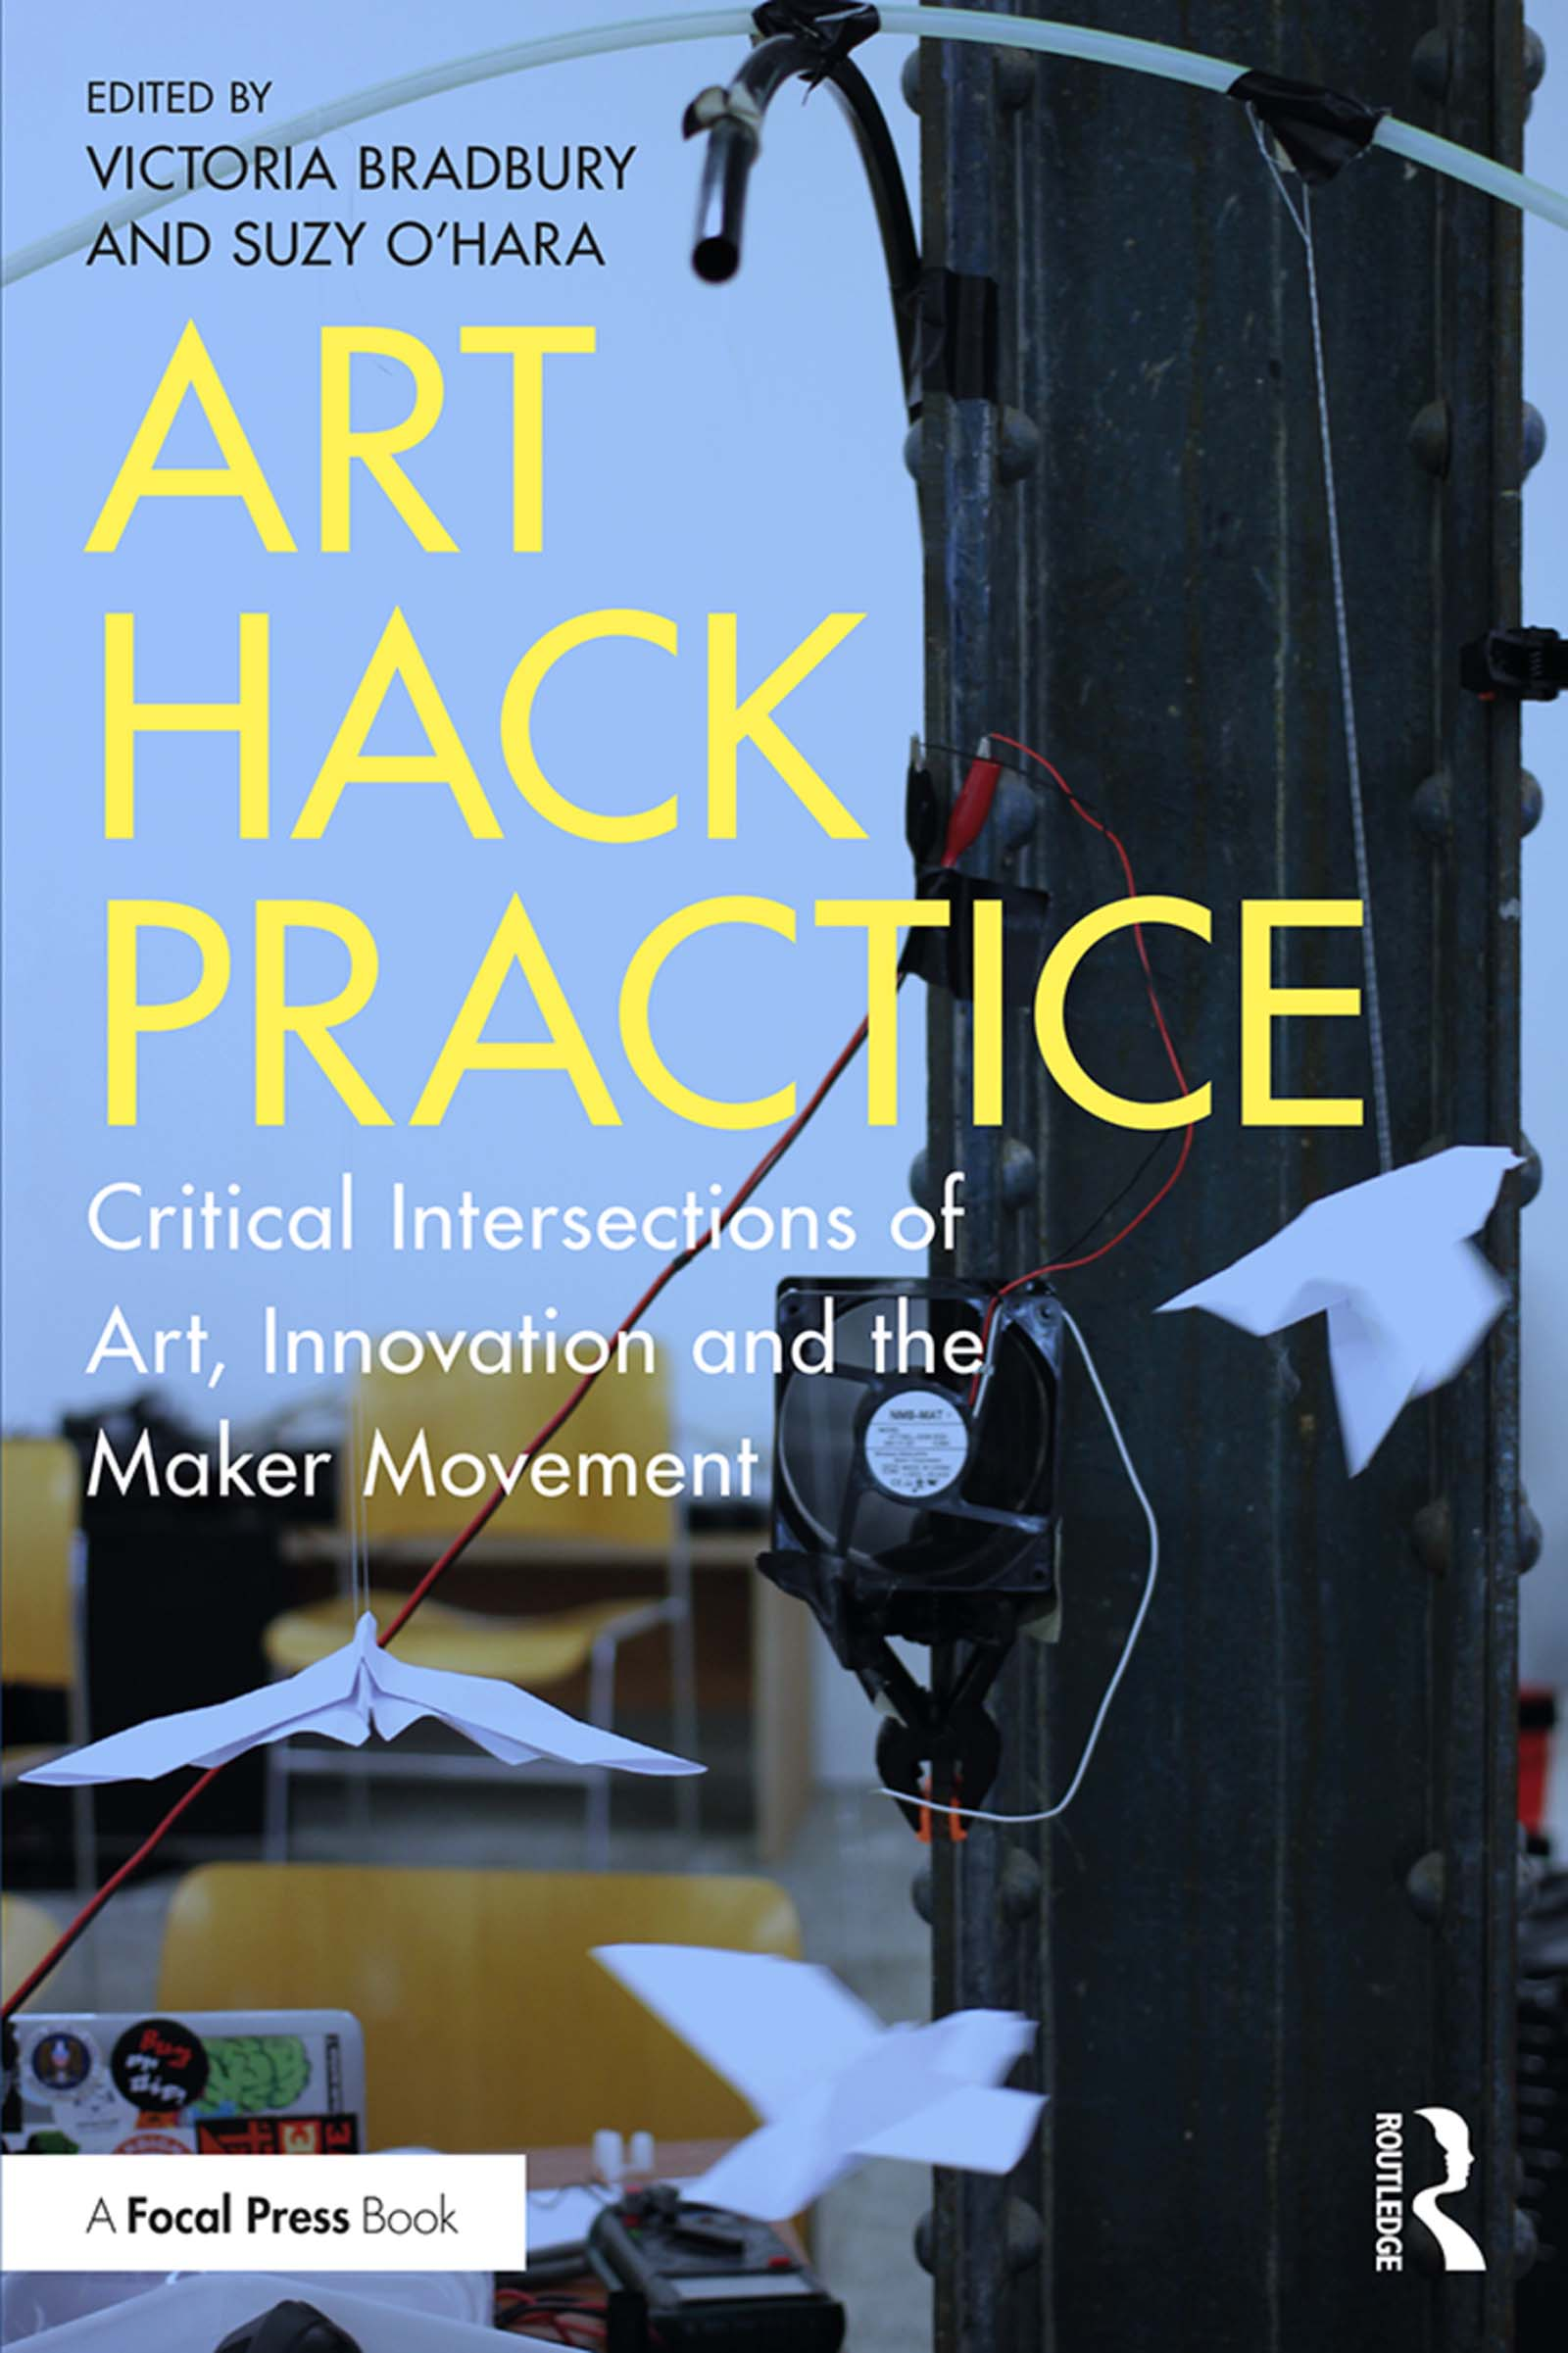 Art Hack Practice: Critical Intersections of Art, Innovation and the Maker Movement book cover